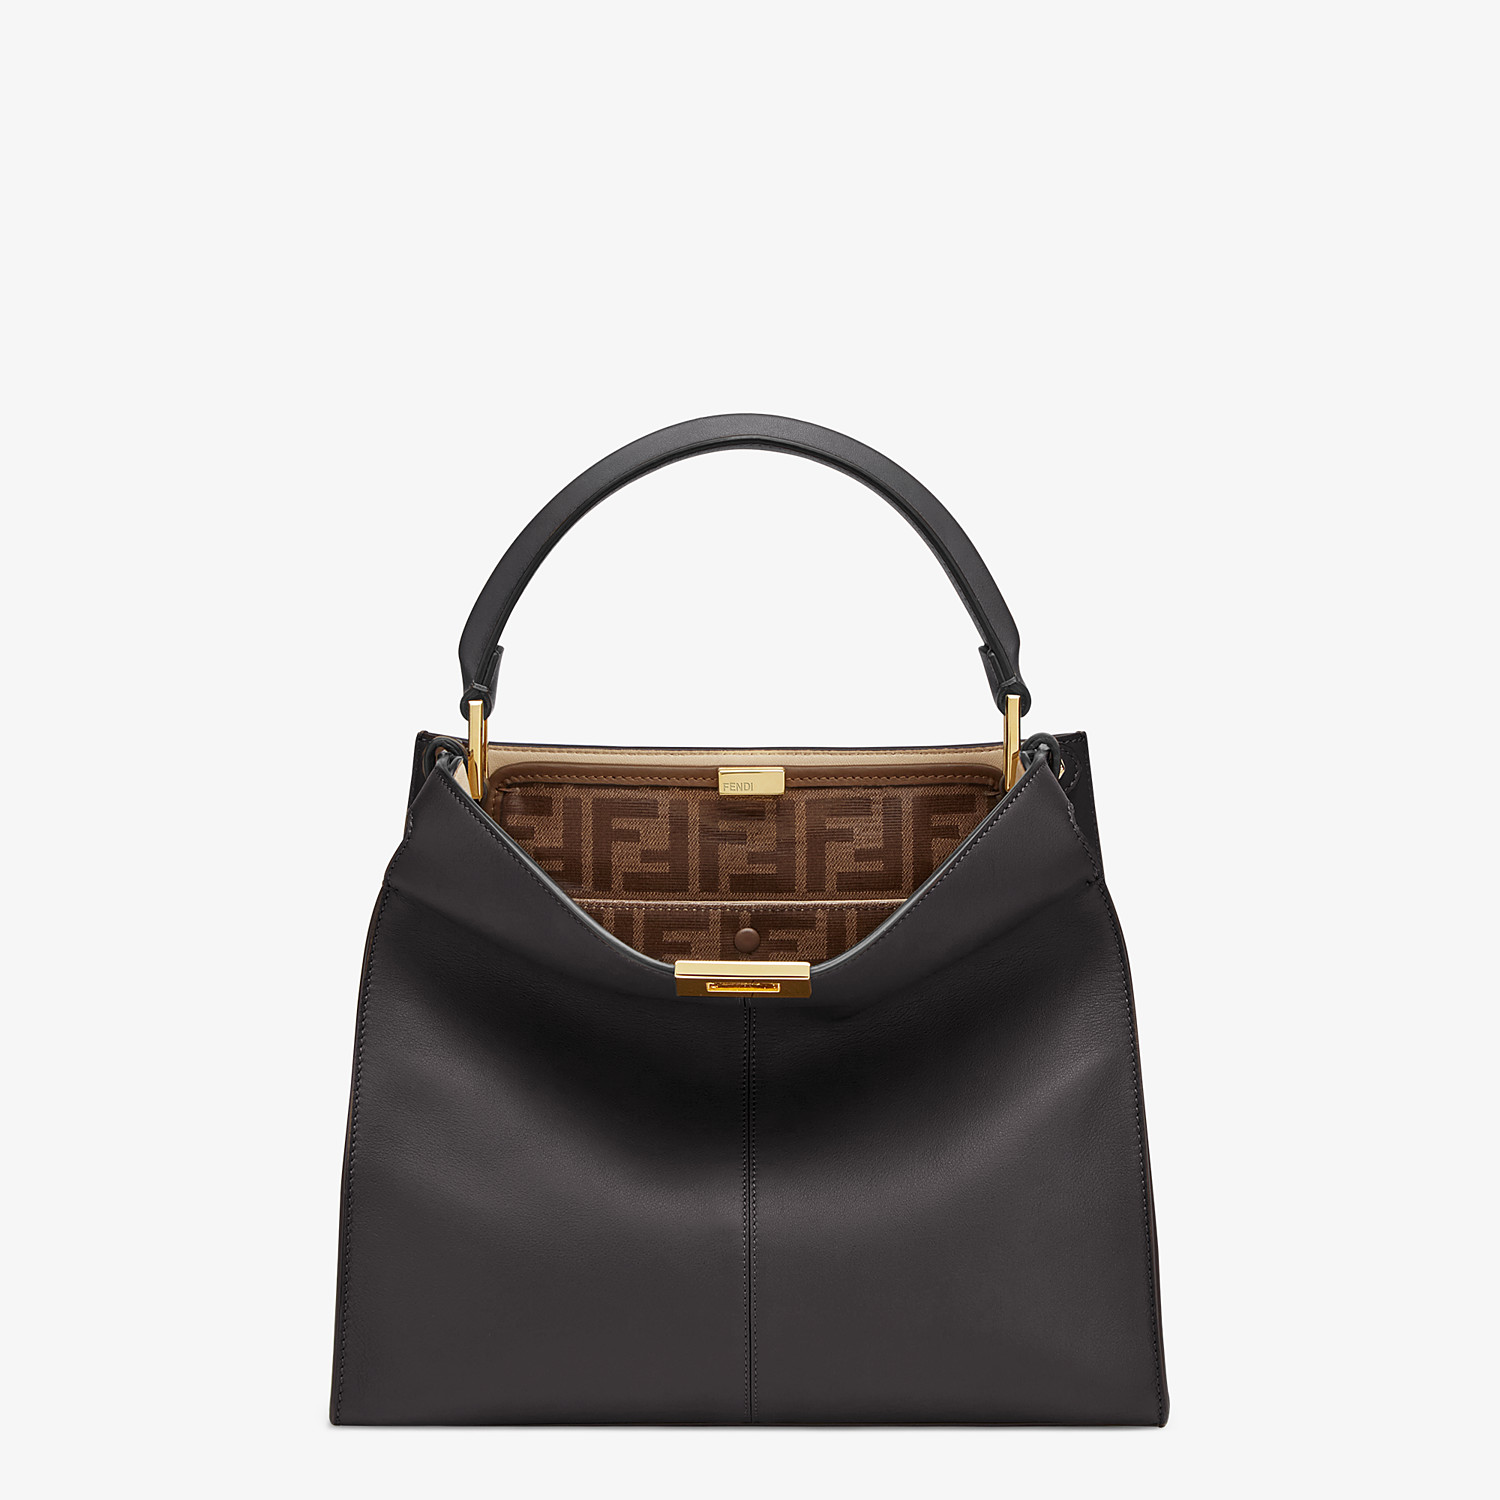 FENDI PEEKABOO X-LITE MEDIUM - Tasche aus Leder in Schwarz - view 2 detail